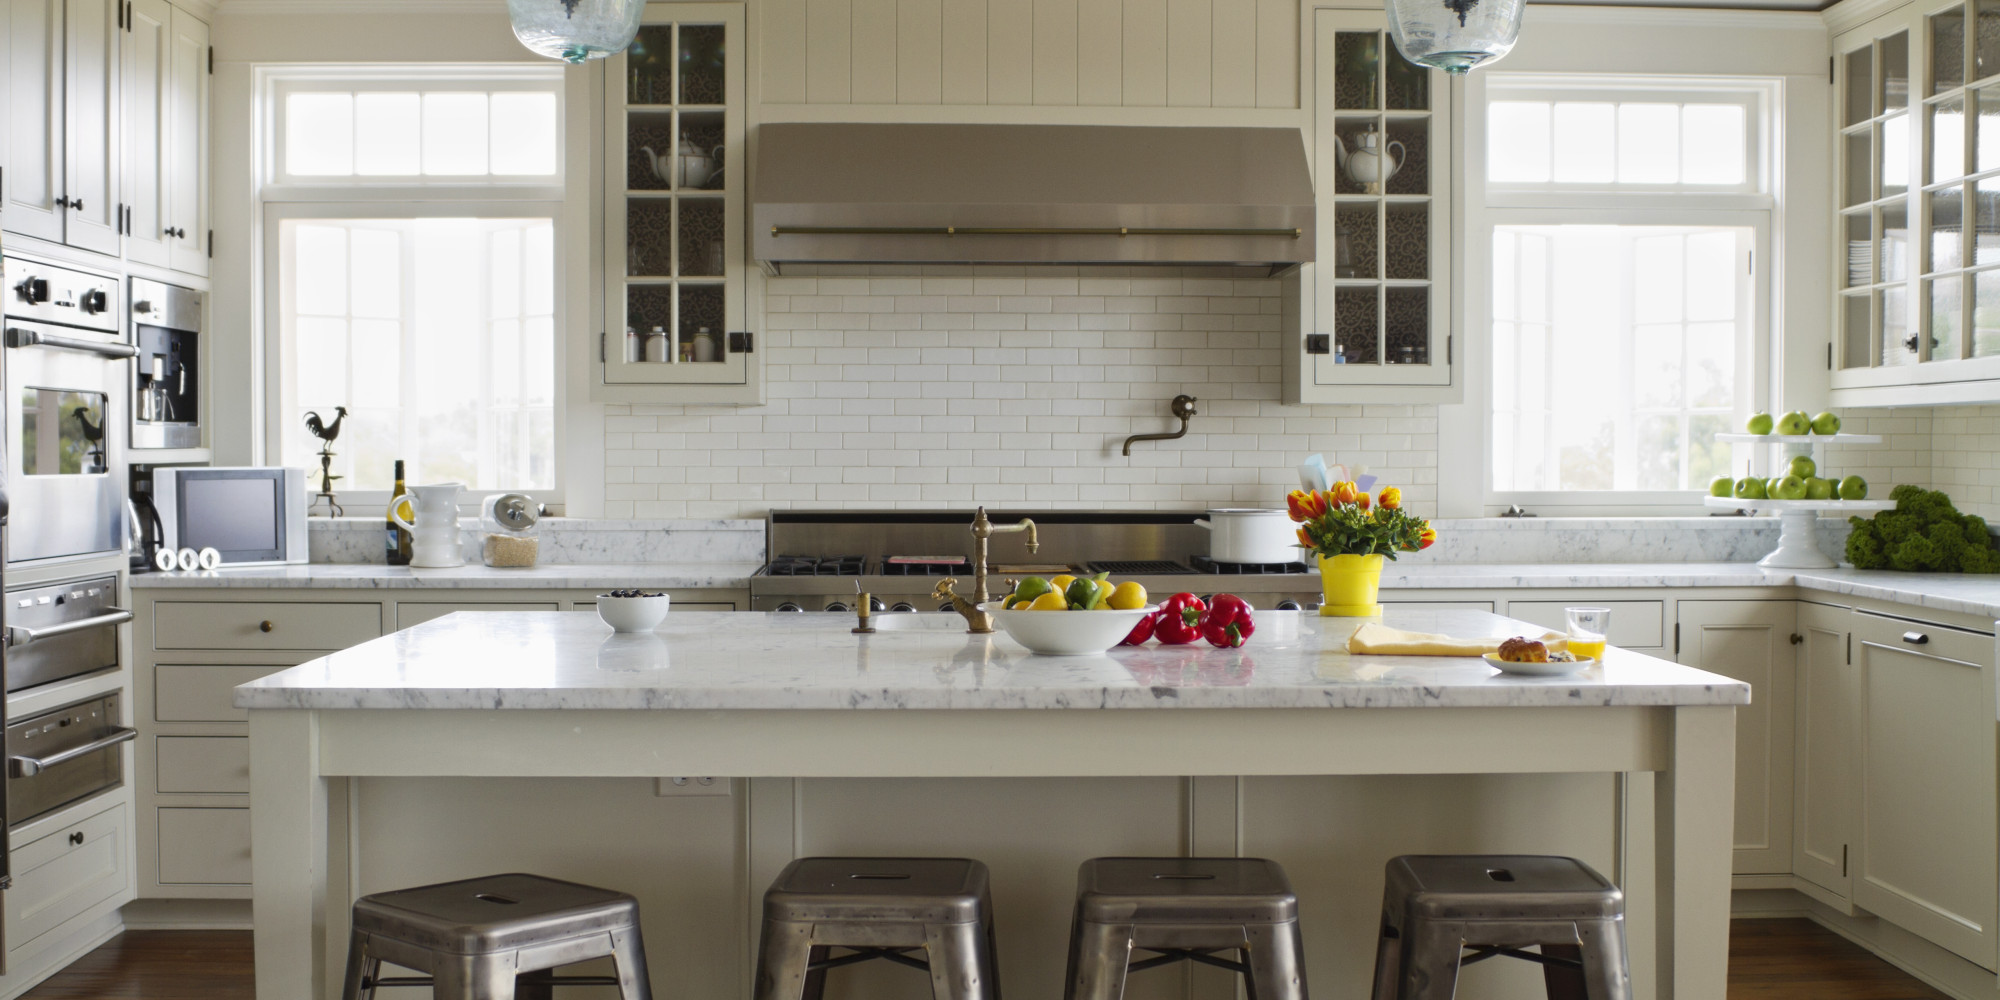 The 3 biggest kitchen trends of 2014 might surprise you Kitchen cabinets colors 2014